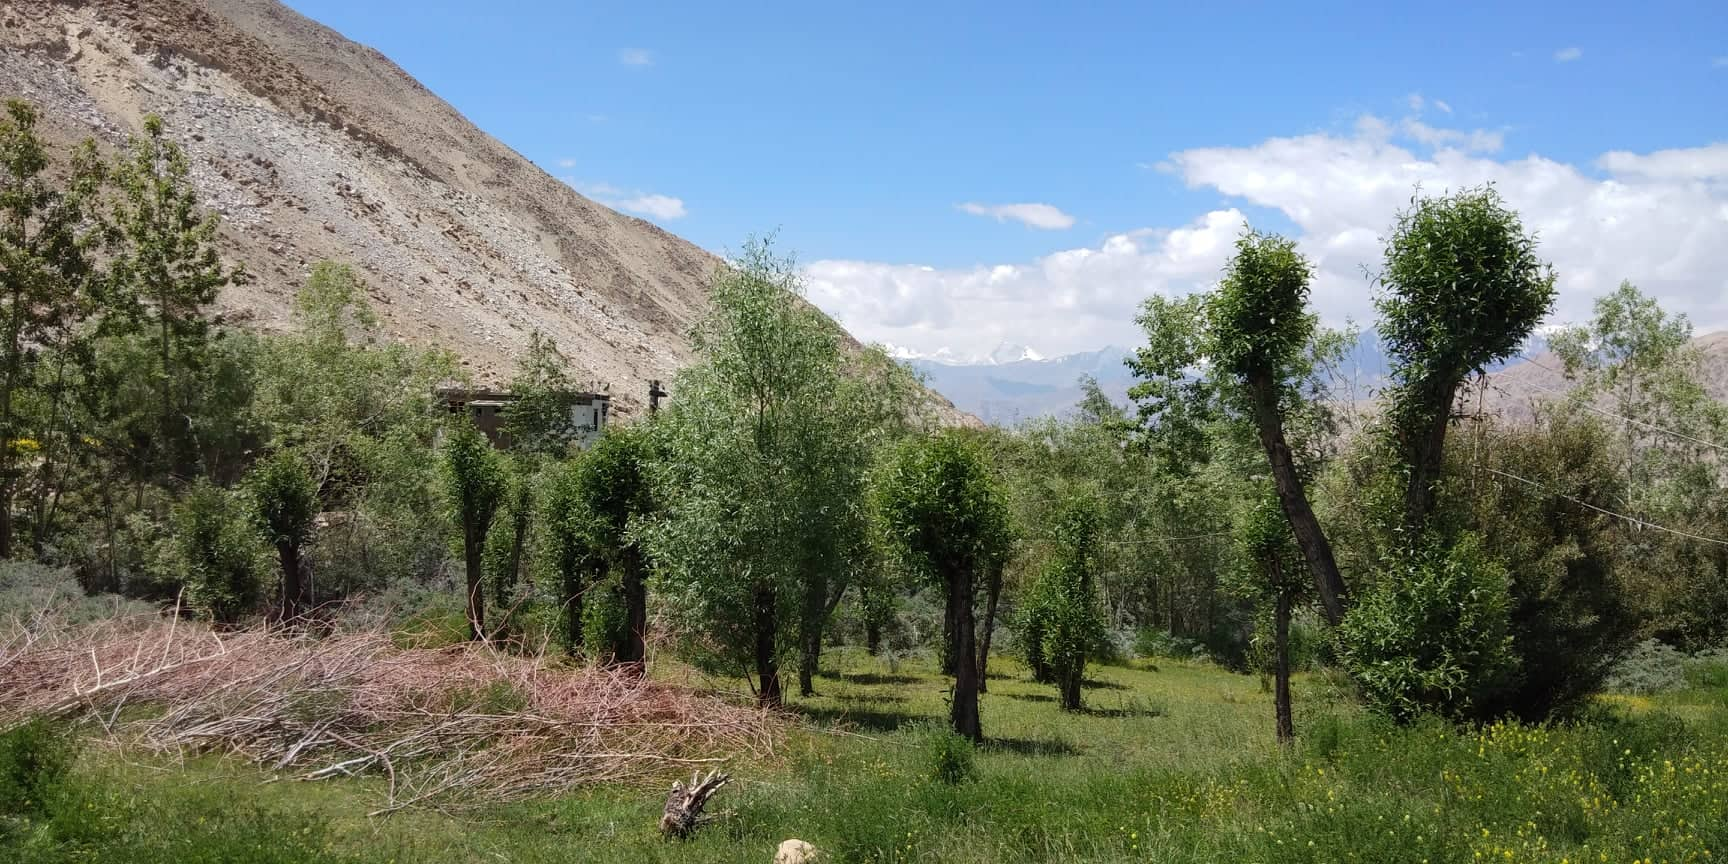 A scenic patch of green in a cold desert. Tashi's efforts made this possible. (Source: Tsetan Dolkar)